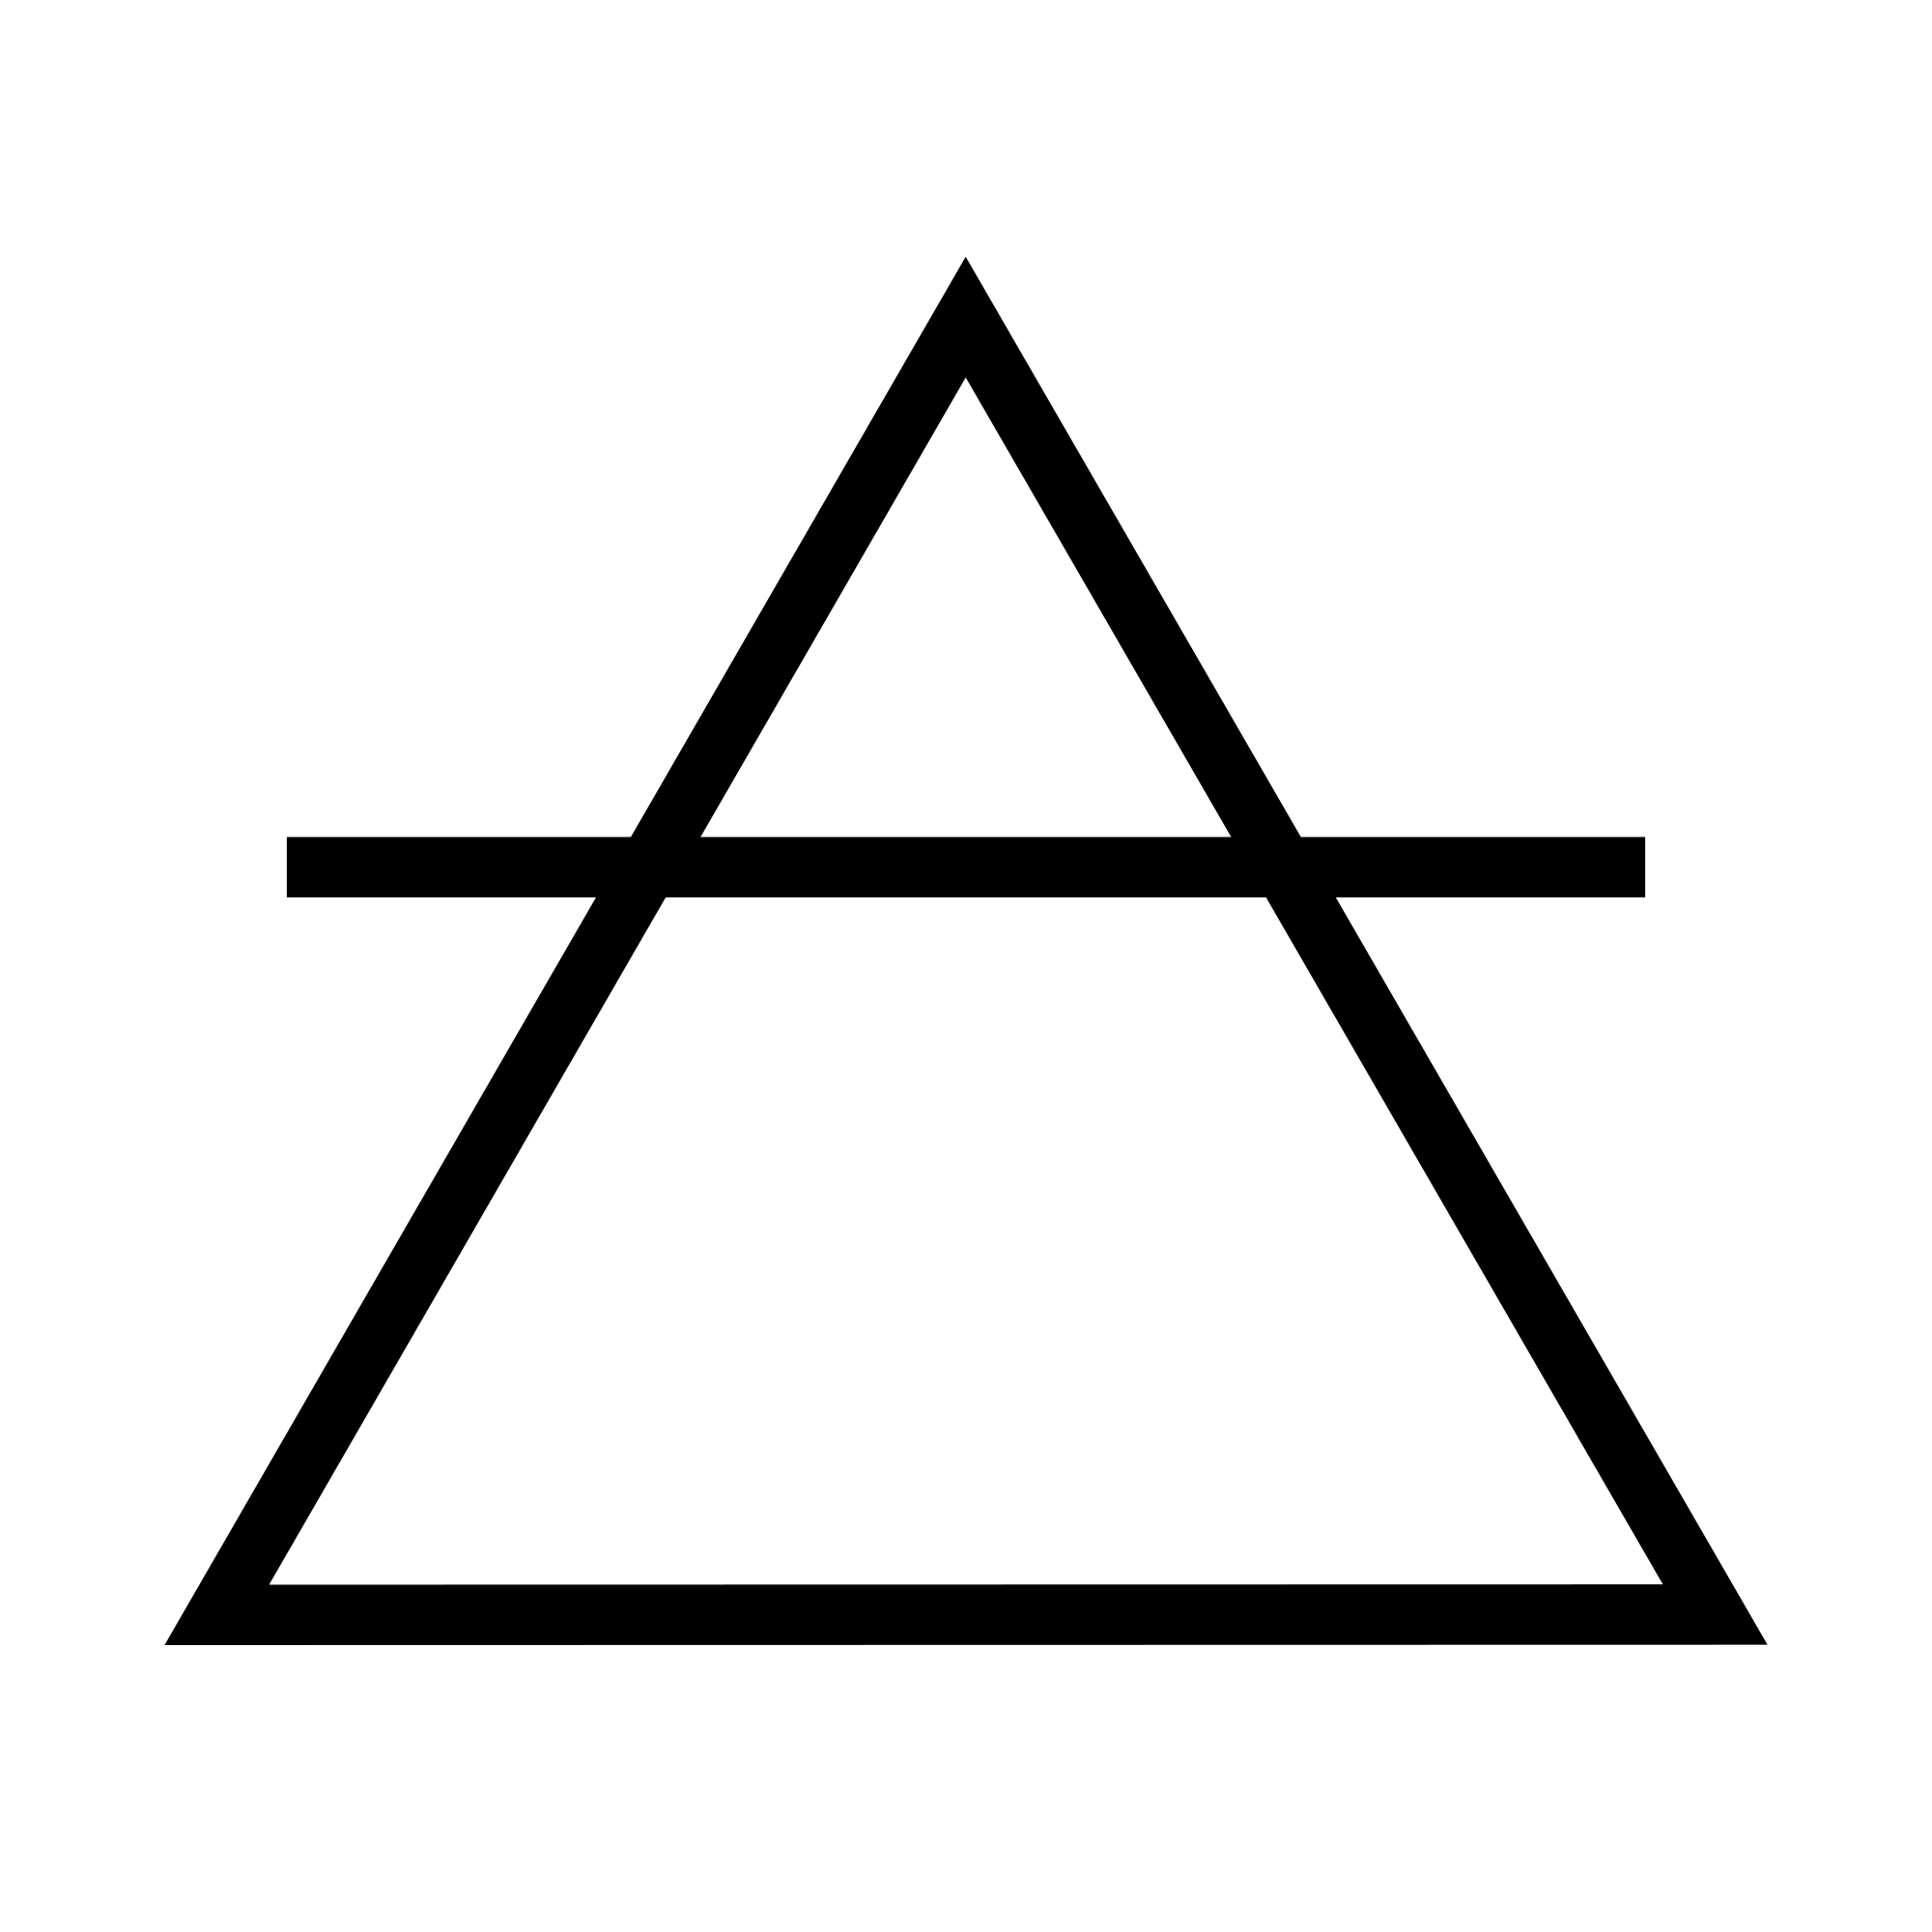 vector alchemy symbol